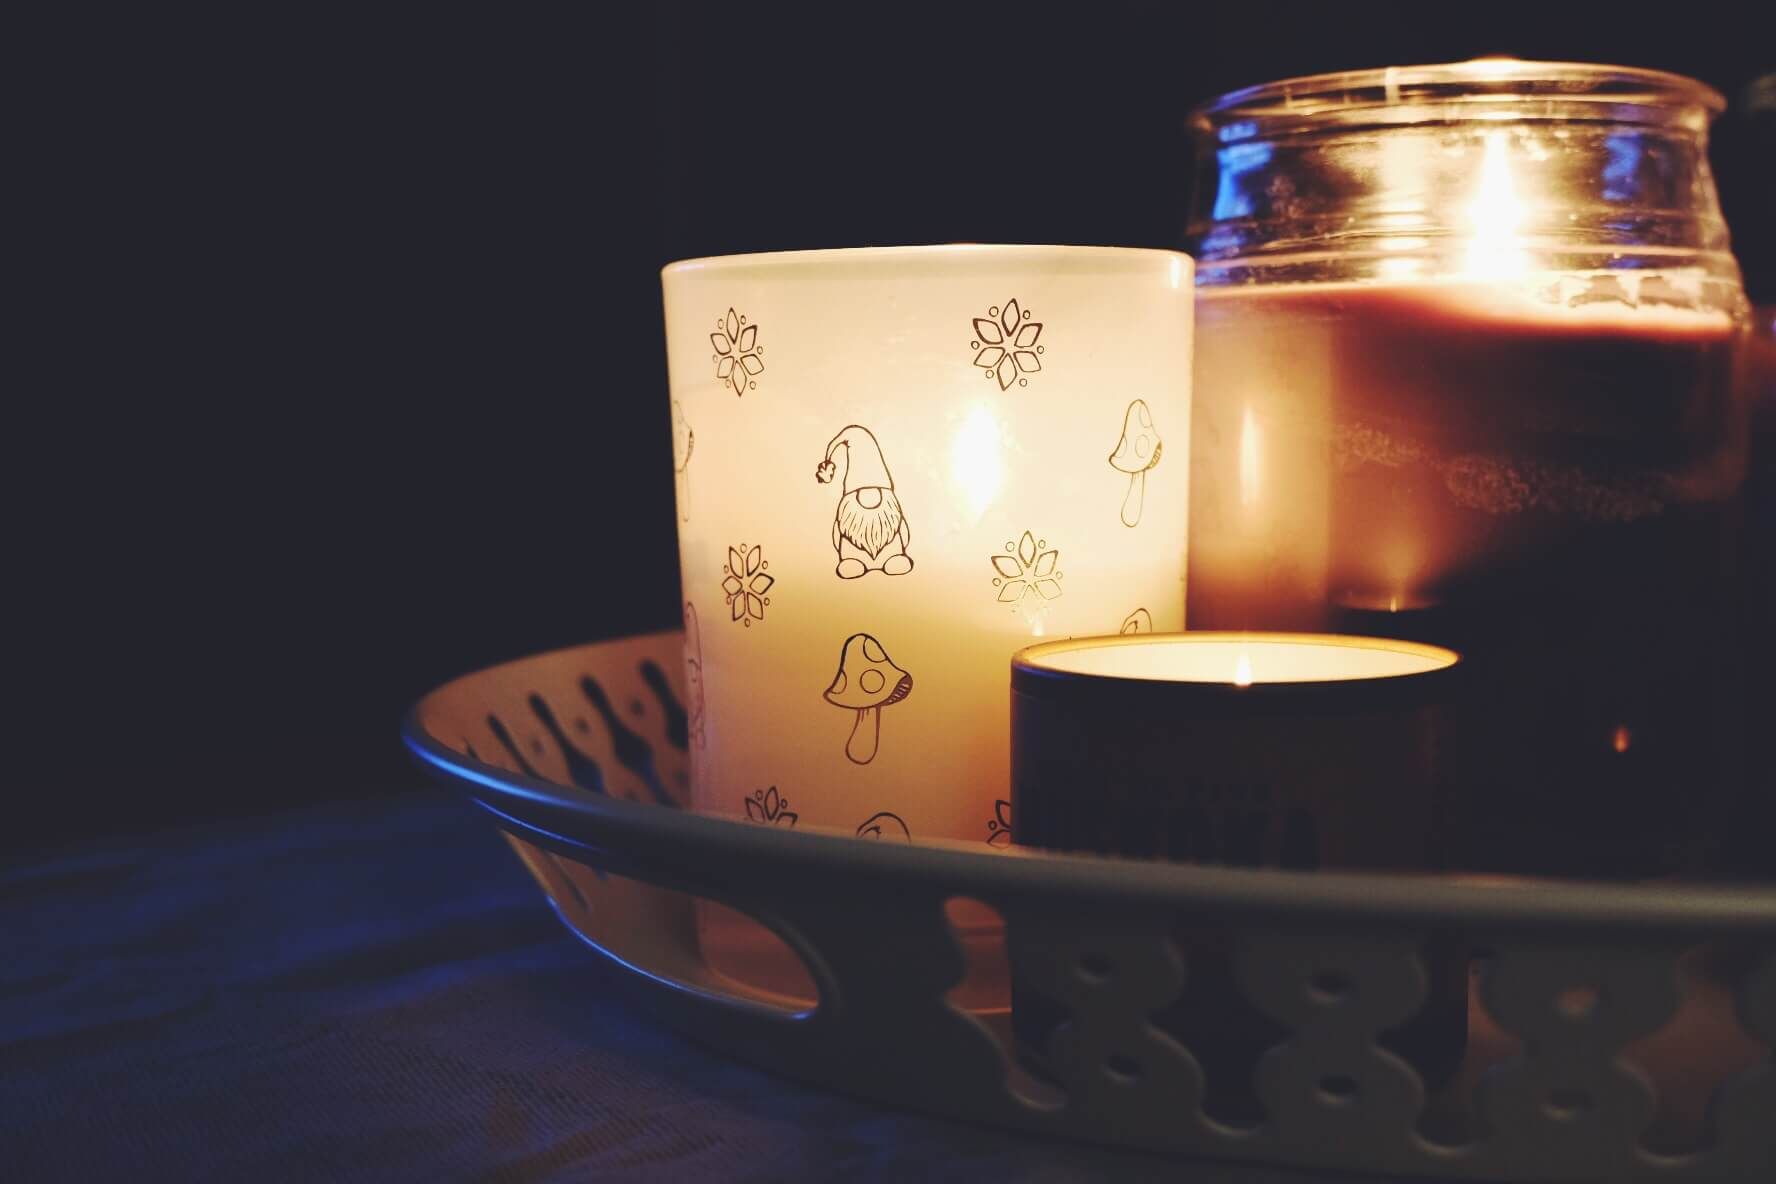 How to Hygge: 10 easy ways you can add Hygge to your evening routine